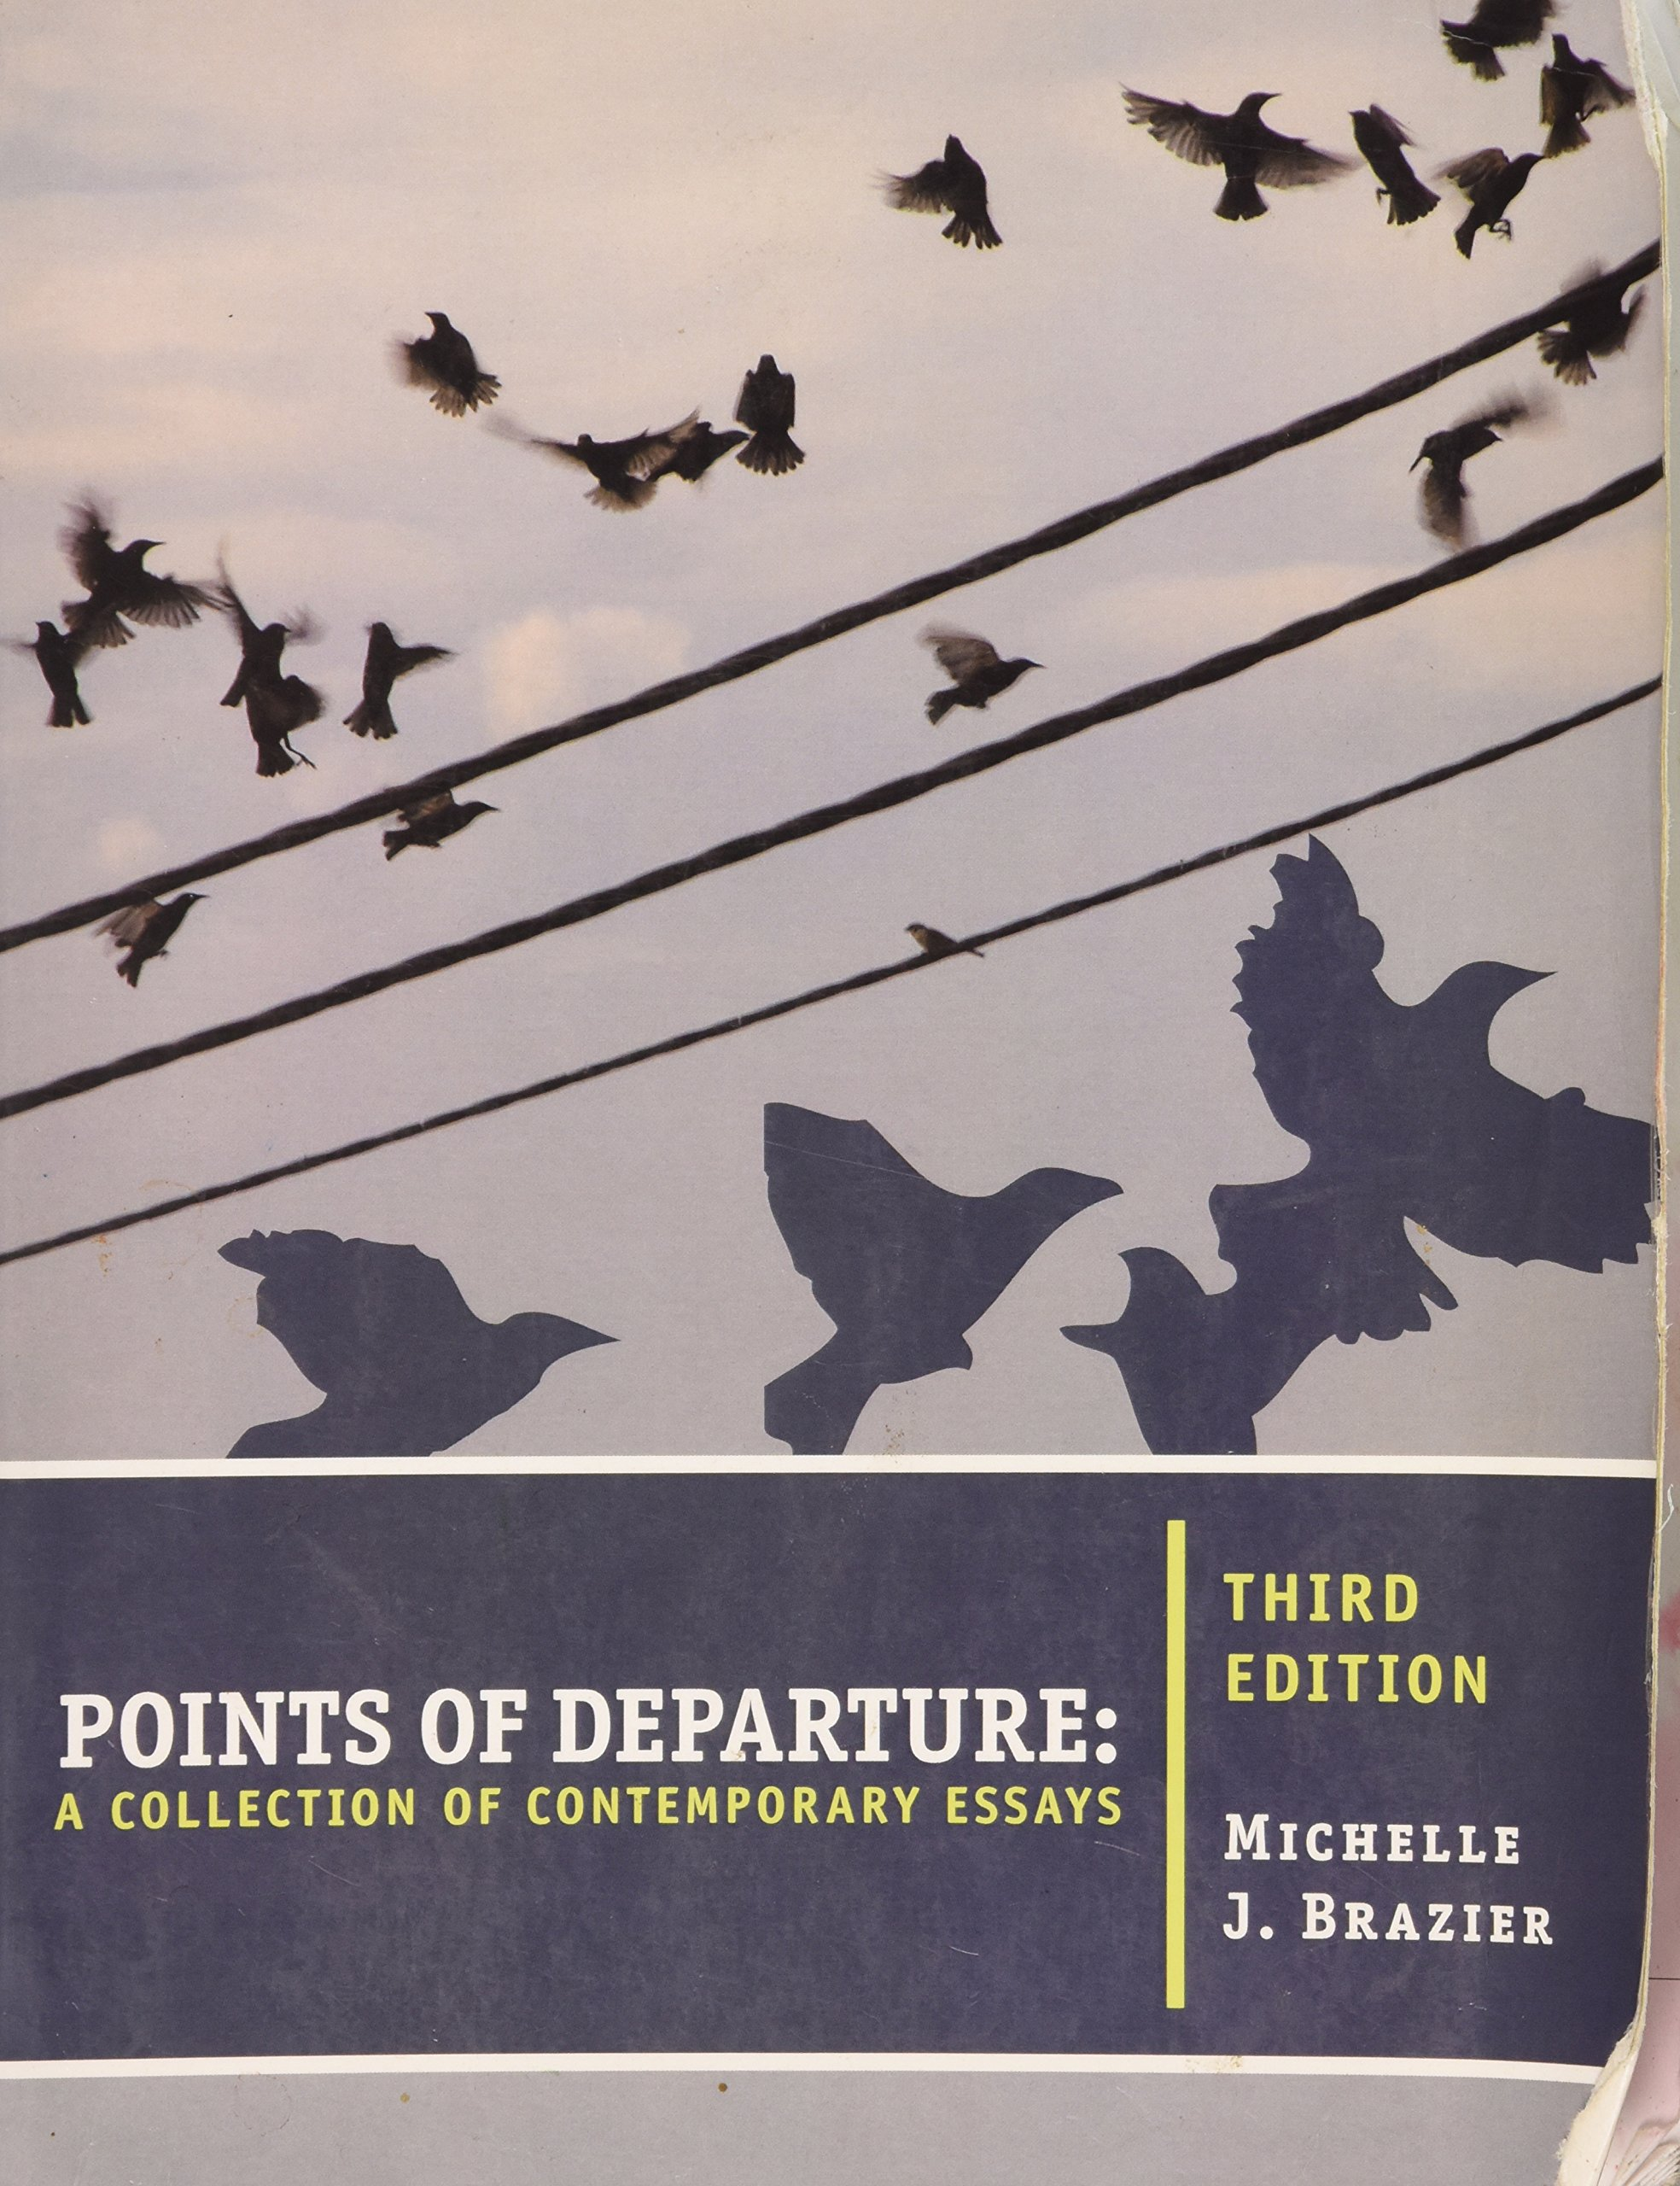 Points of departure 3rd edition michelle j brazier 9781133068020 points of departure 3rd edition michelle j brazier 9781133068020 amazon books fandeluxe Choice Image